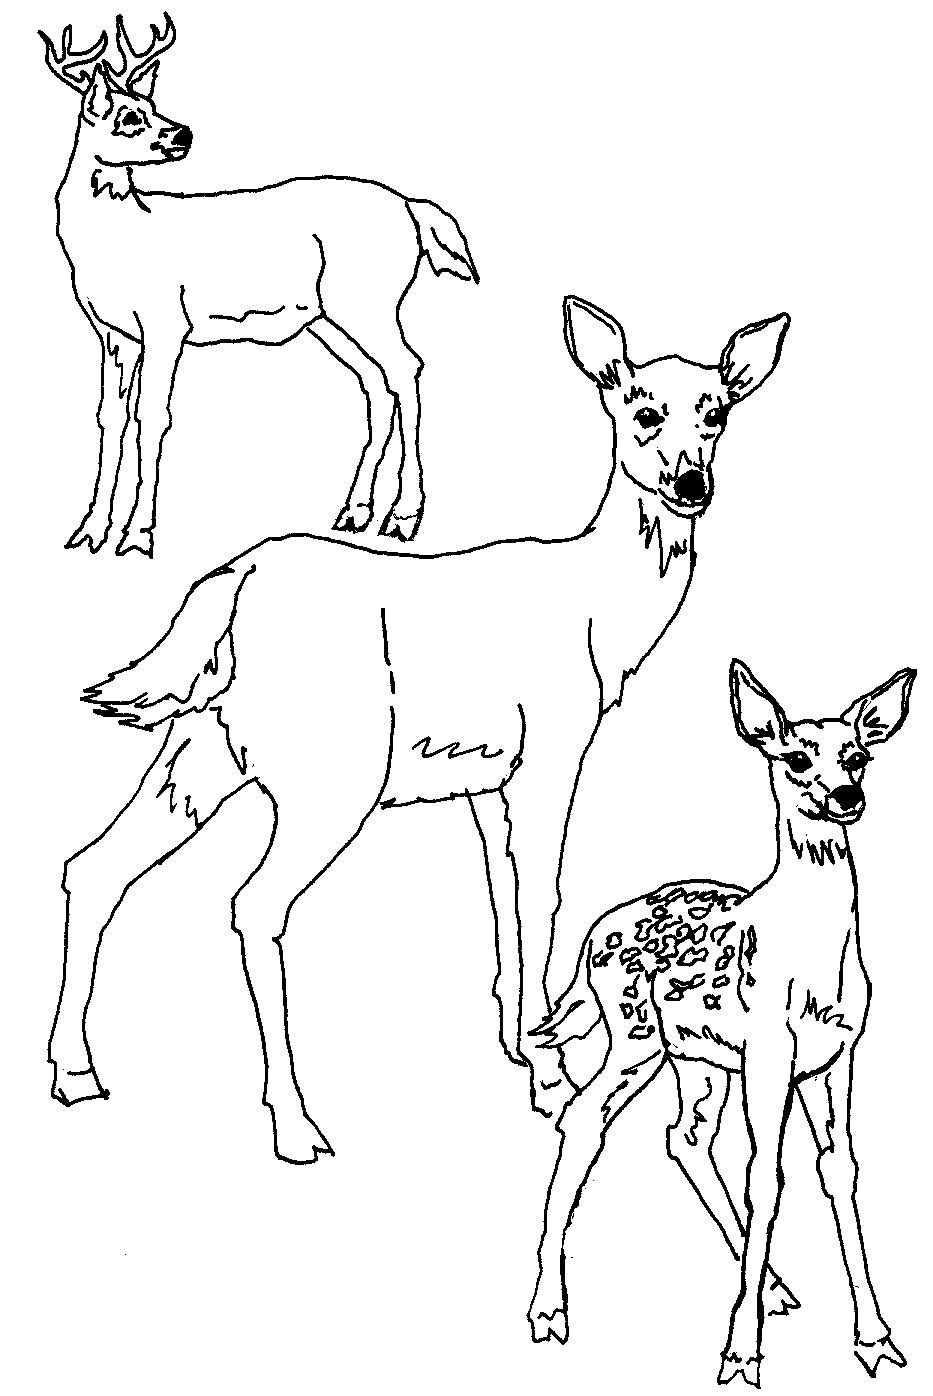 white tailed deer coloring pages - photo#3